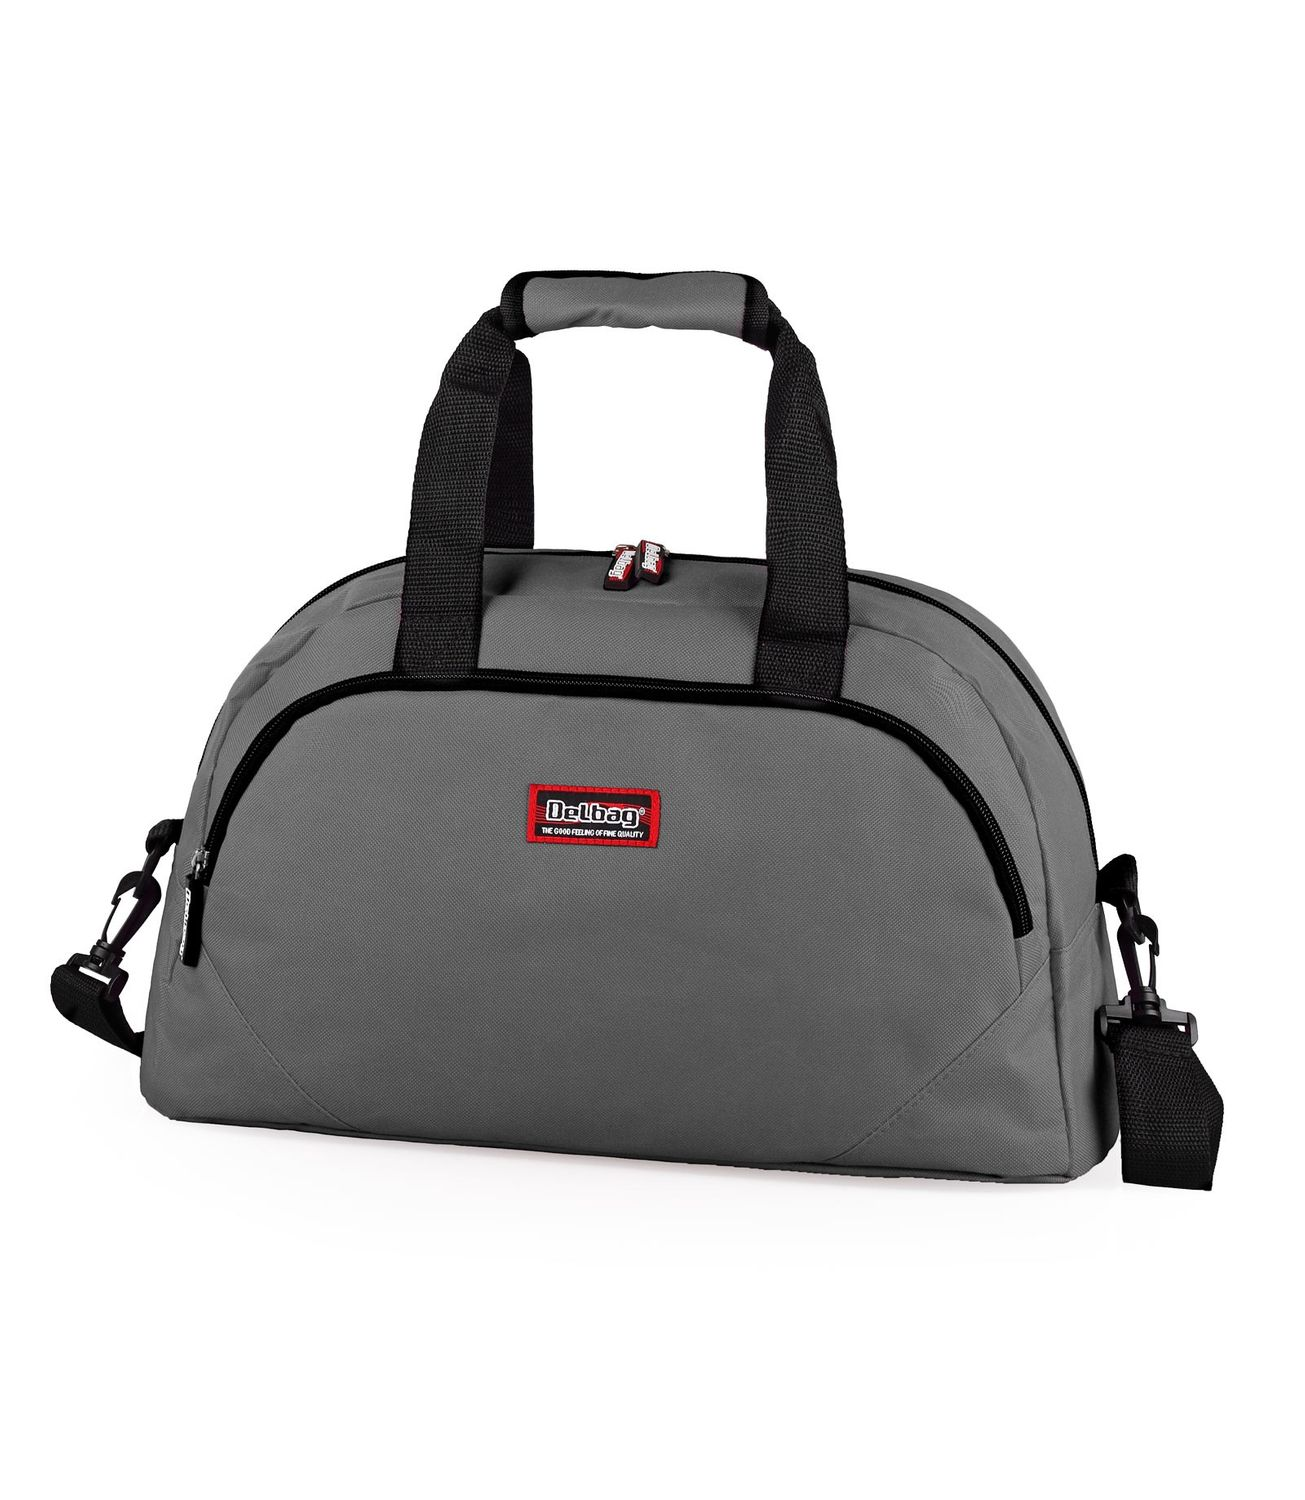 Delbag Travel Holdall Bags – image 6